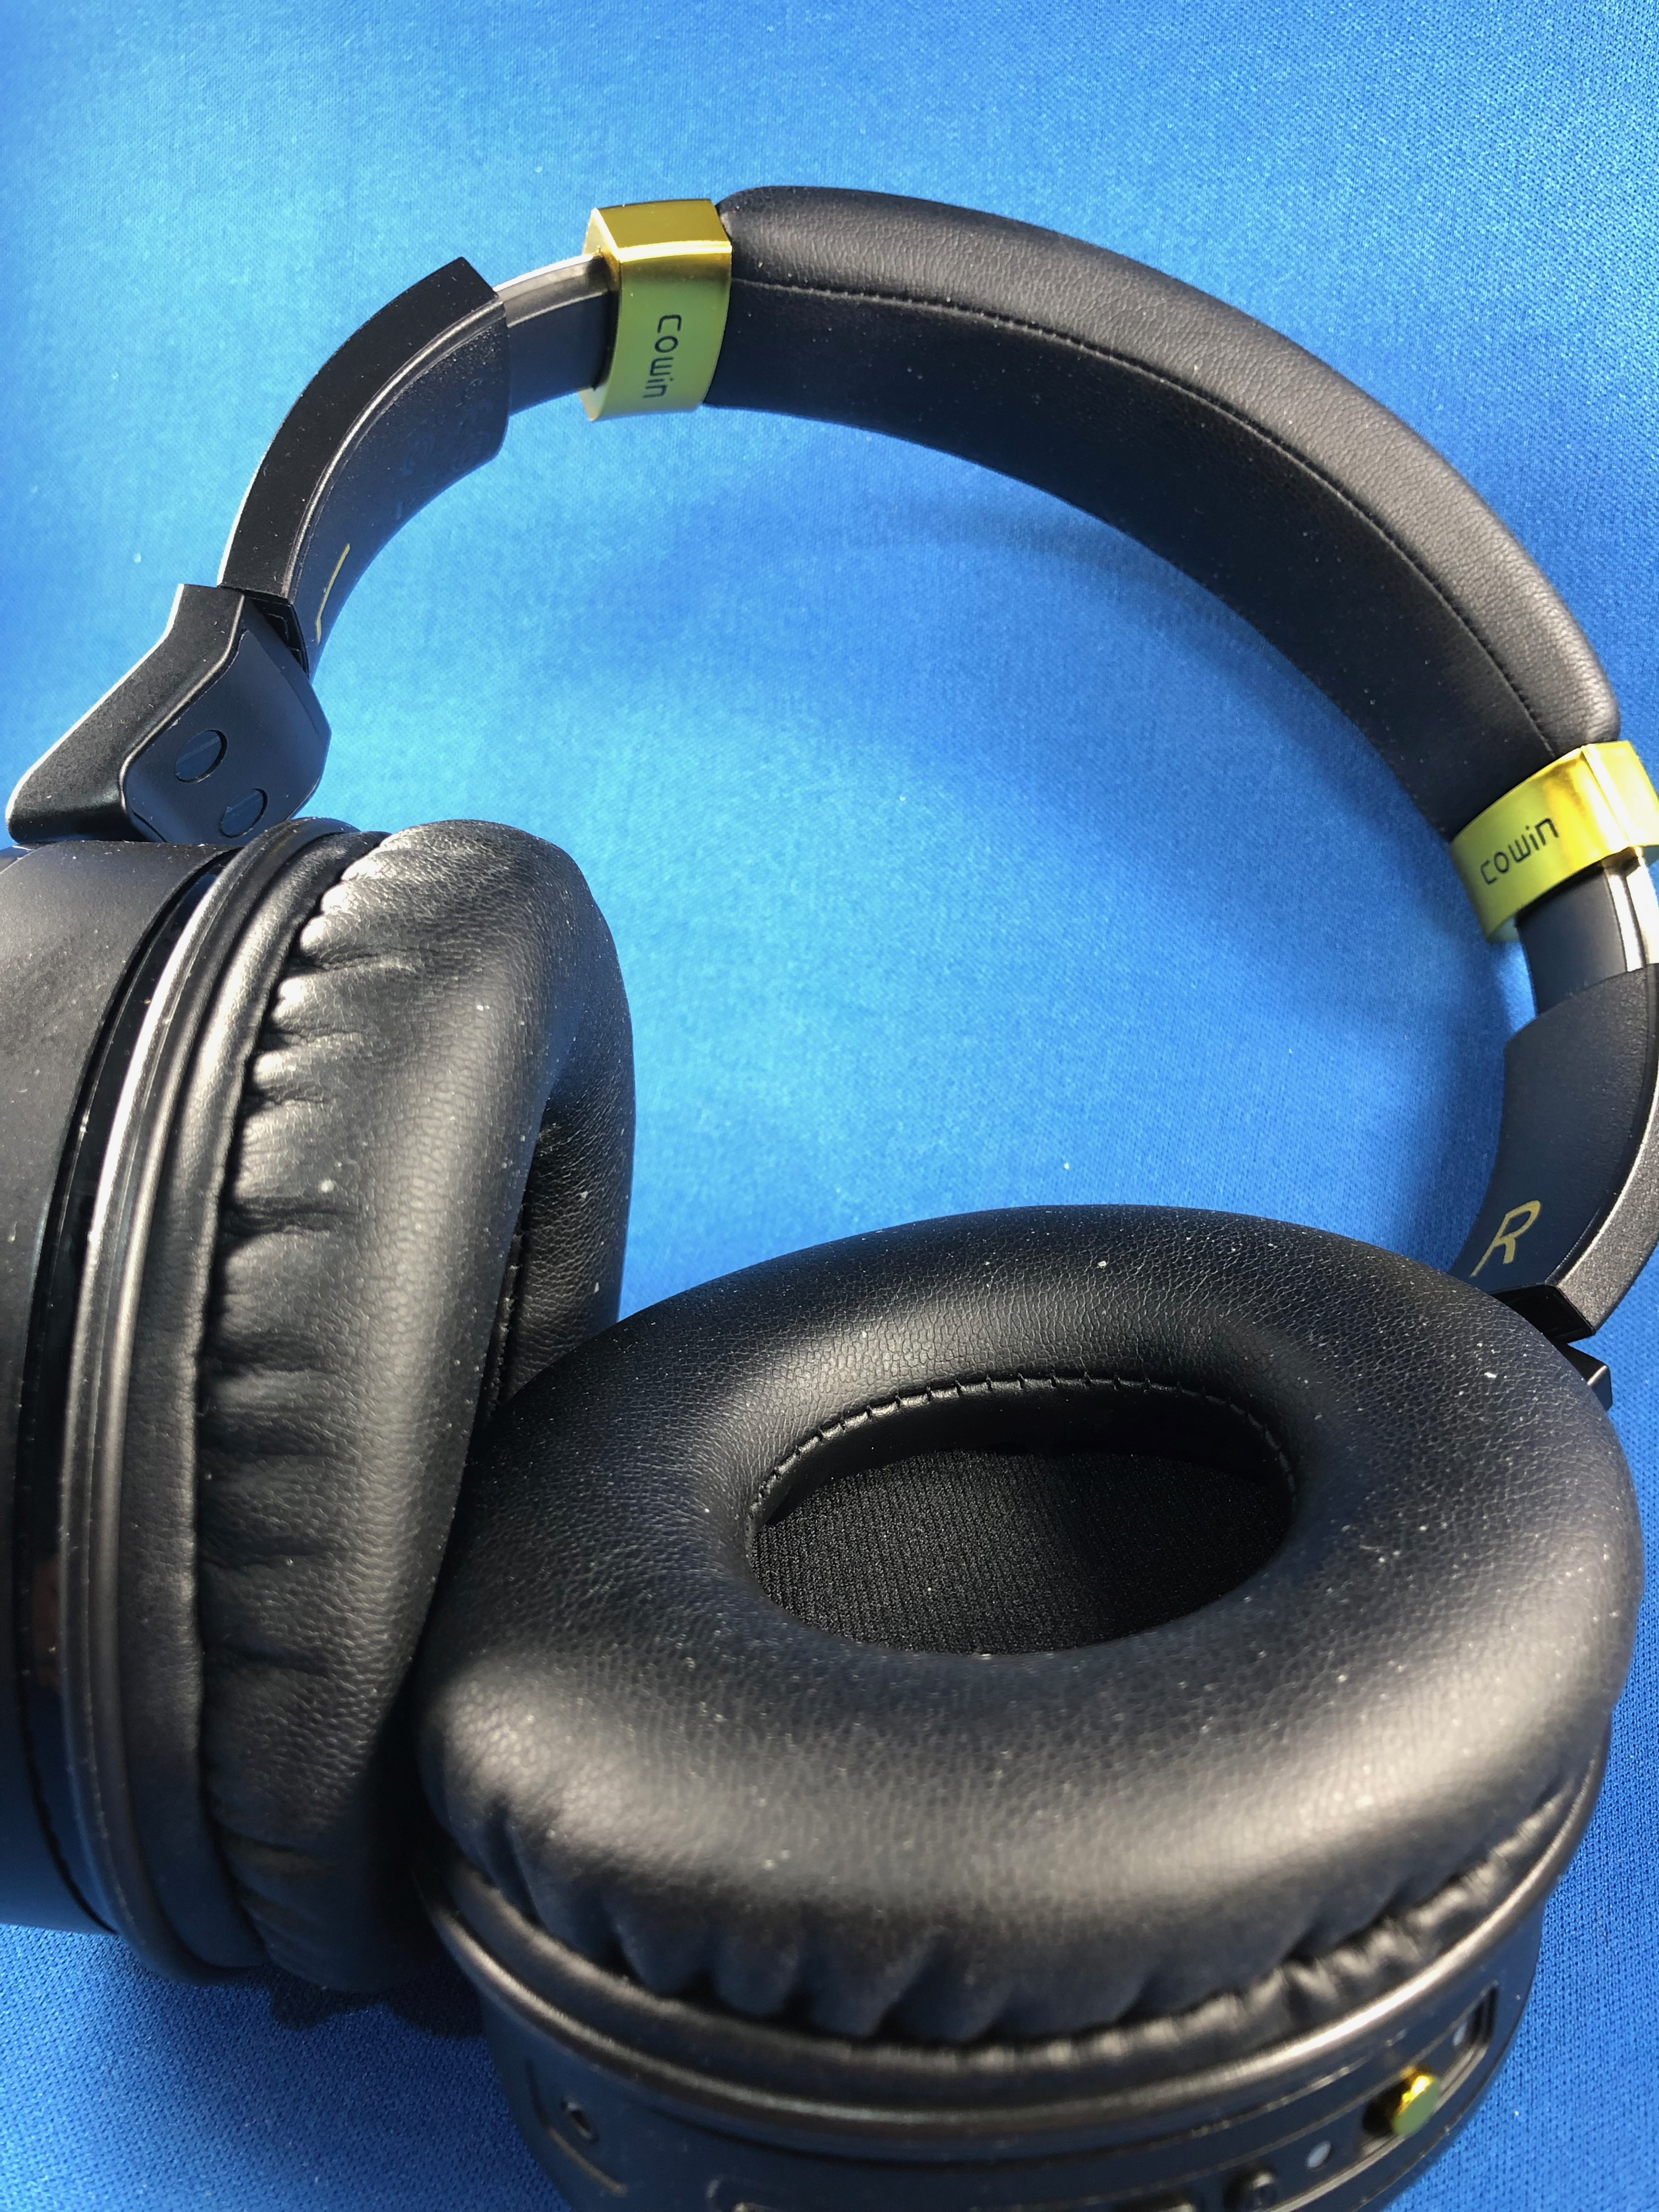 Cowin E8 over-the-ear noise-cancelling headphones review – The Gadgeteer